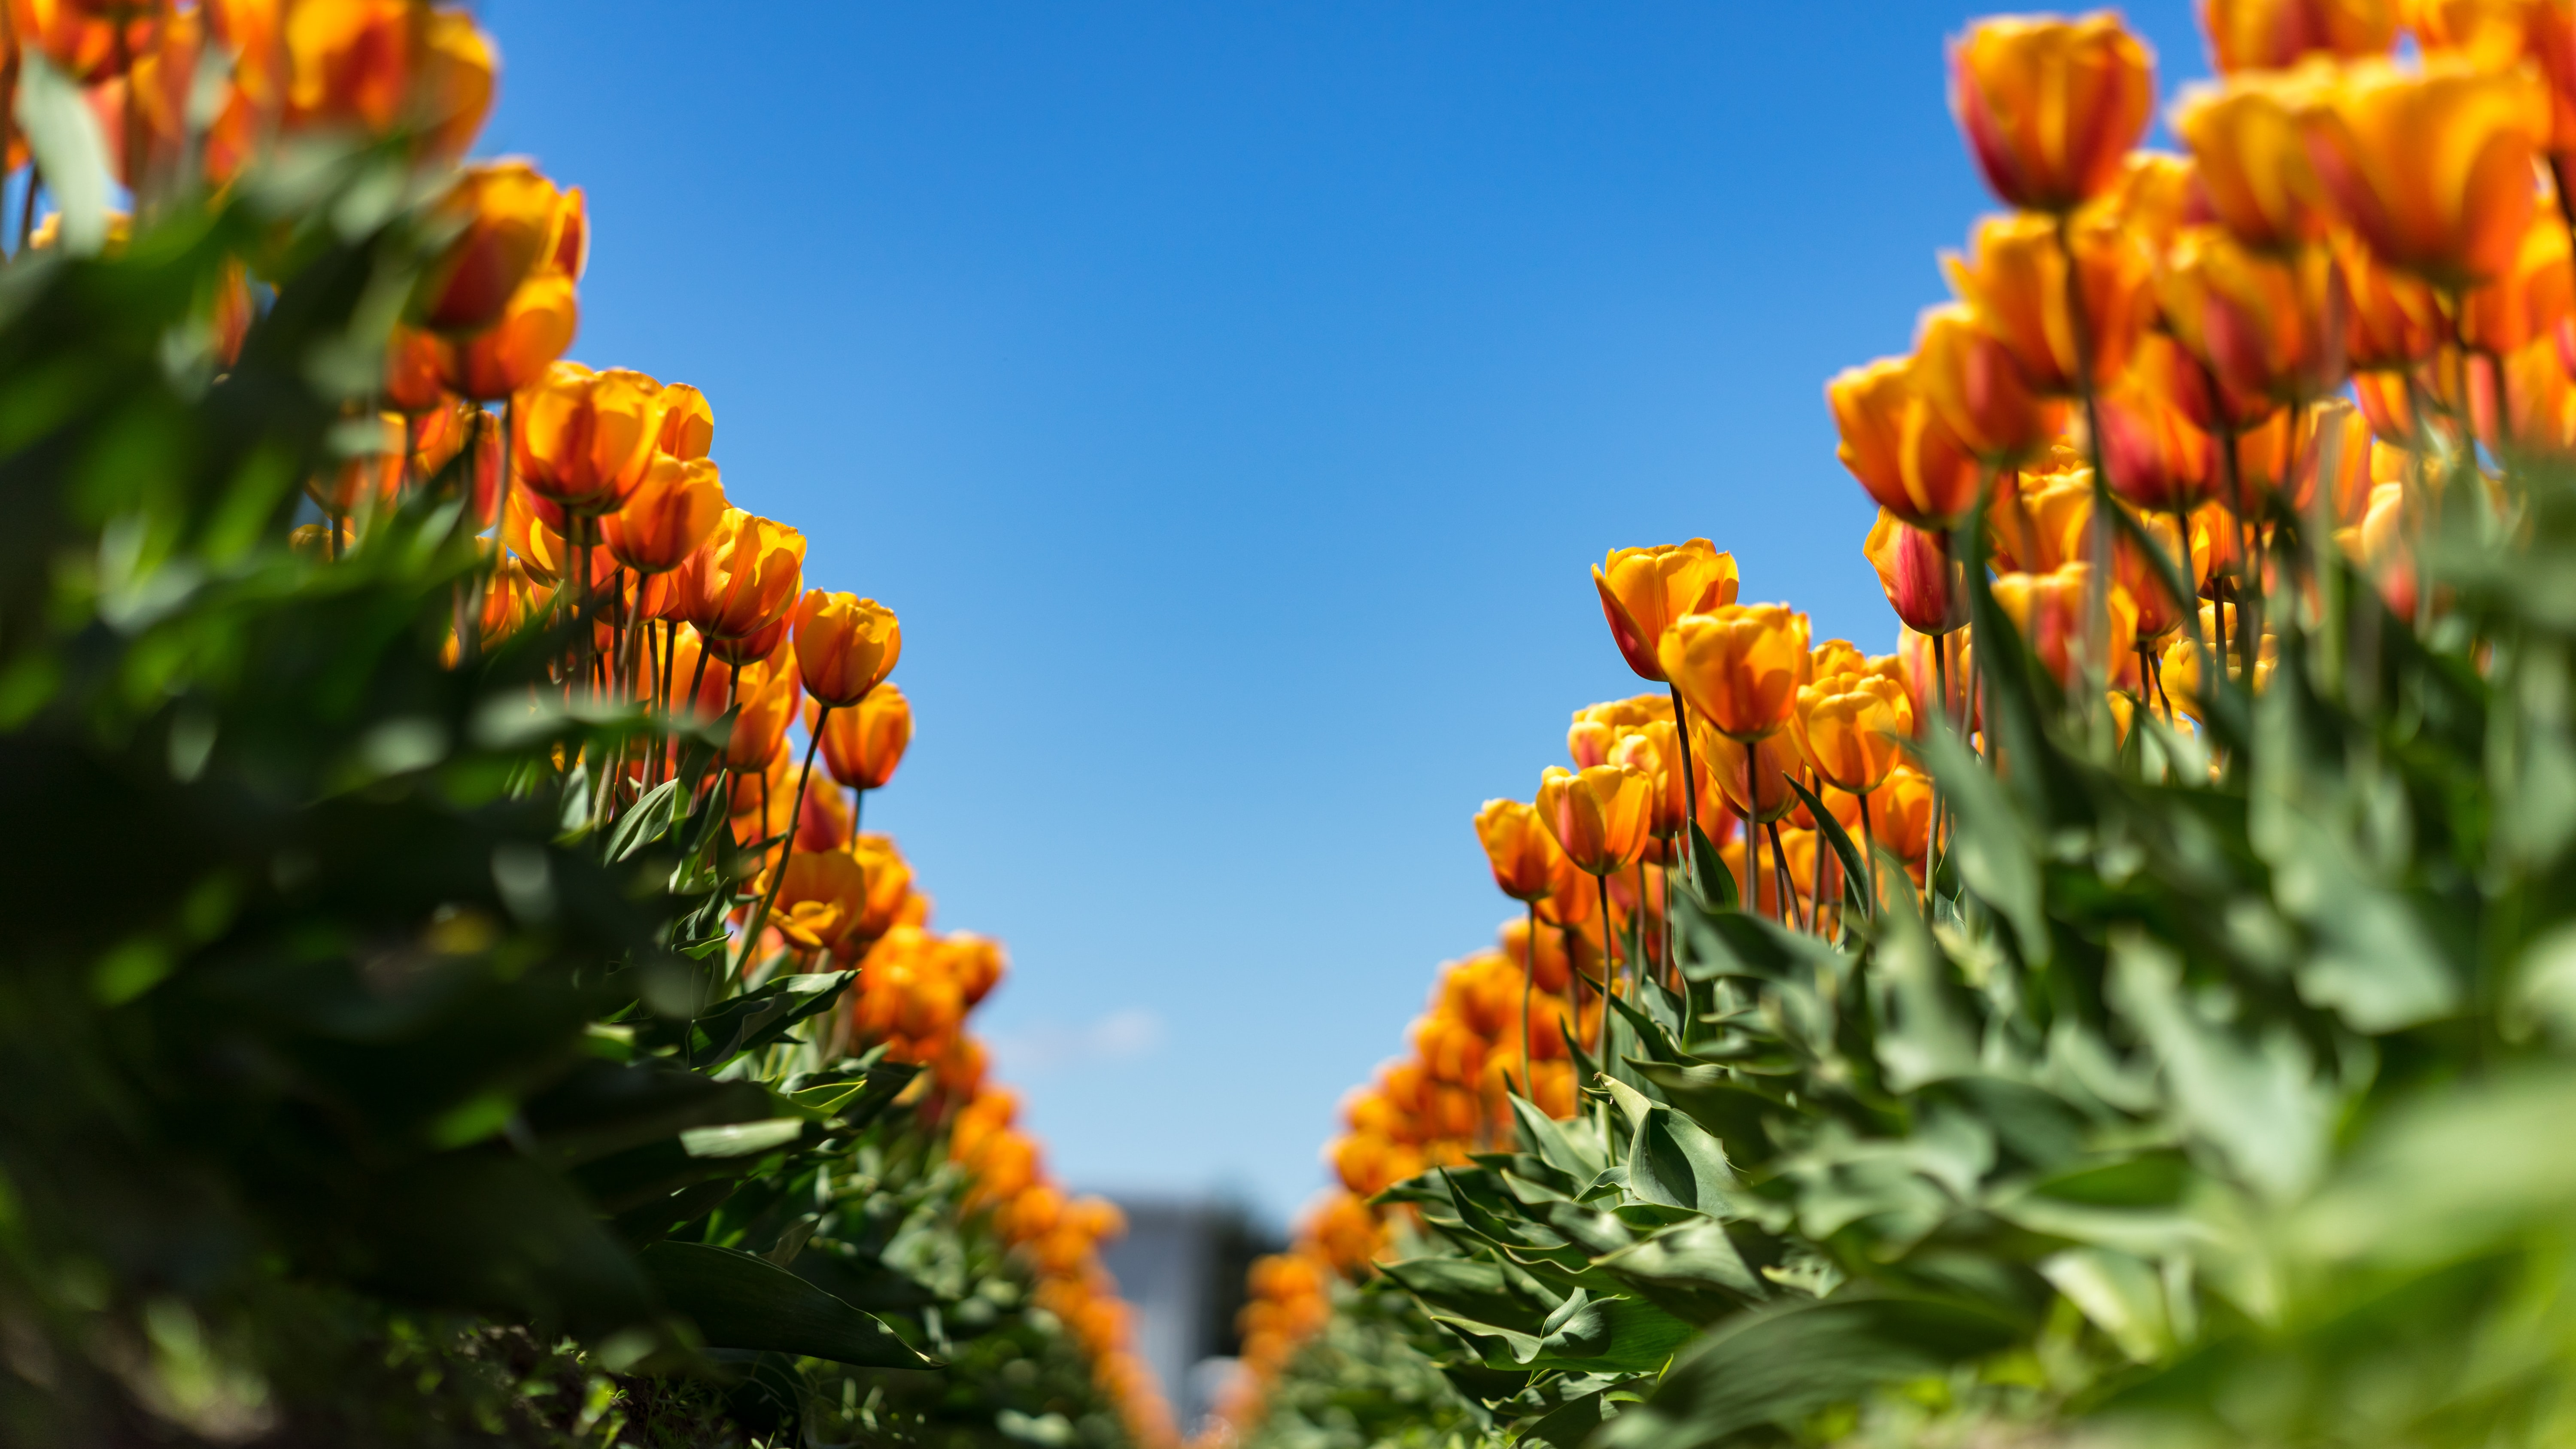 Two long rows of orange tulips under a blue sky